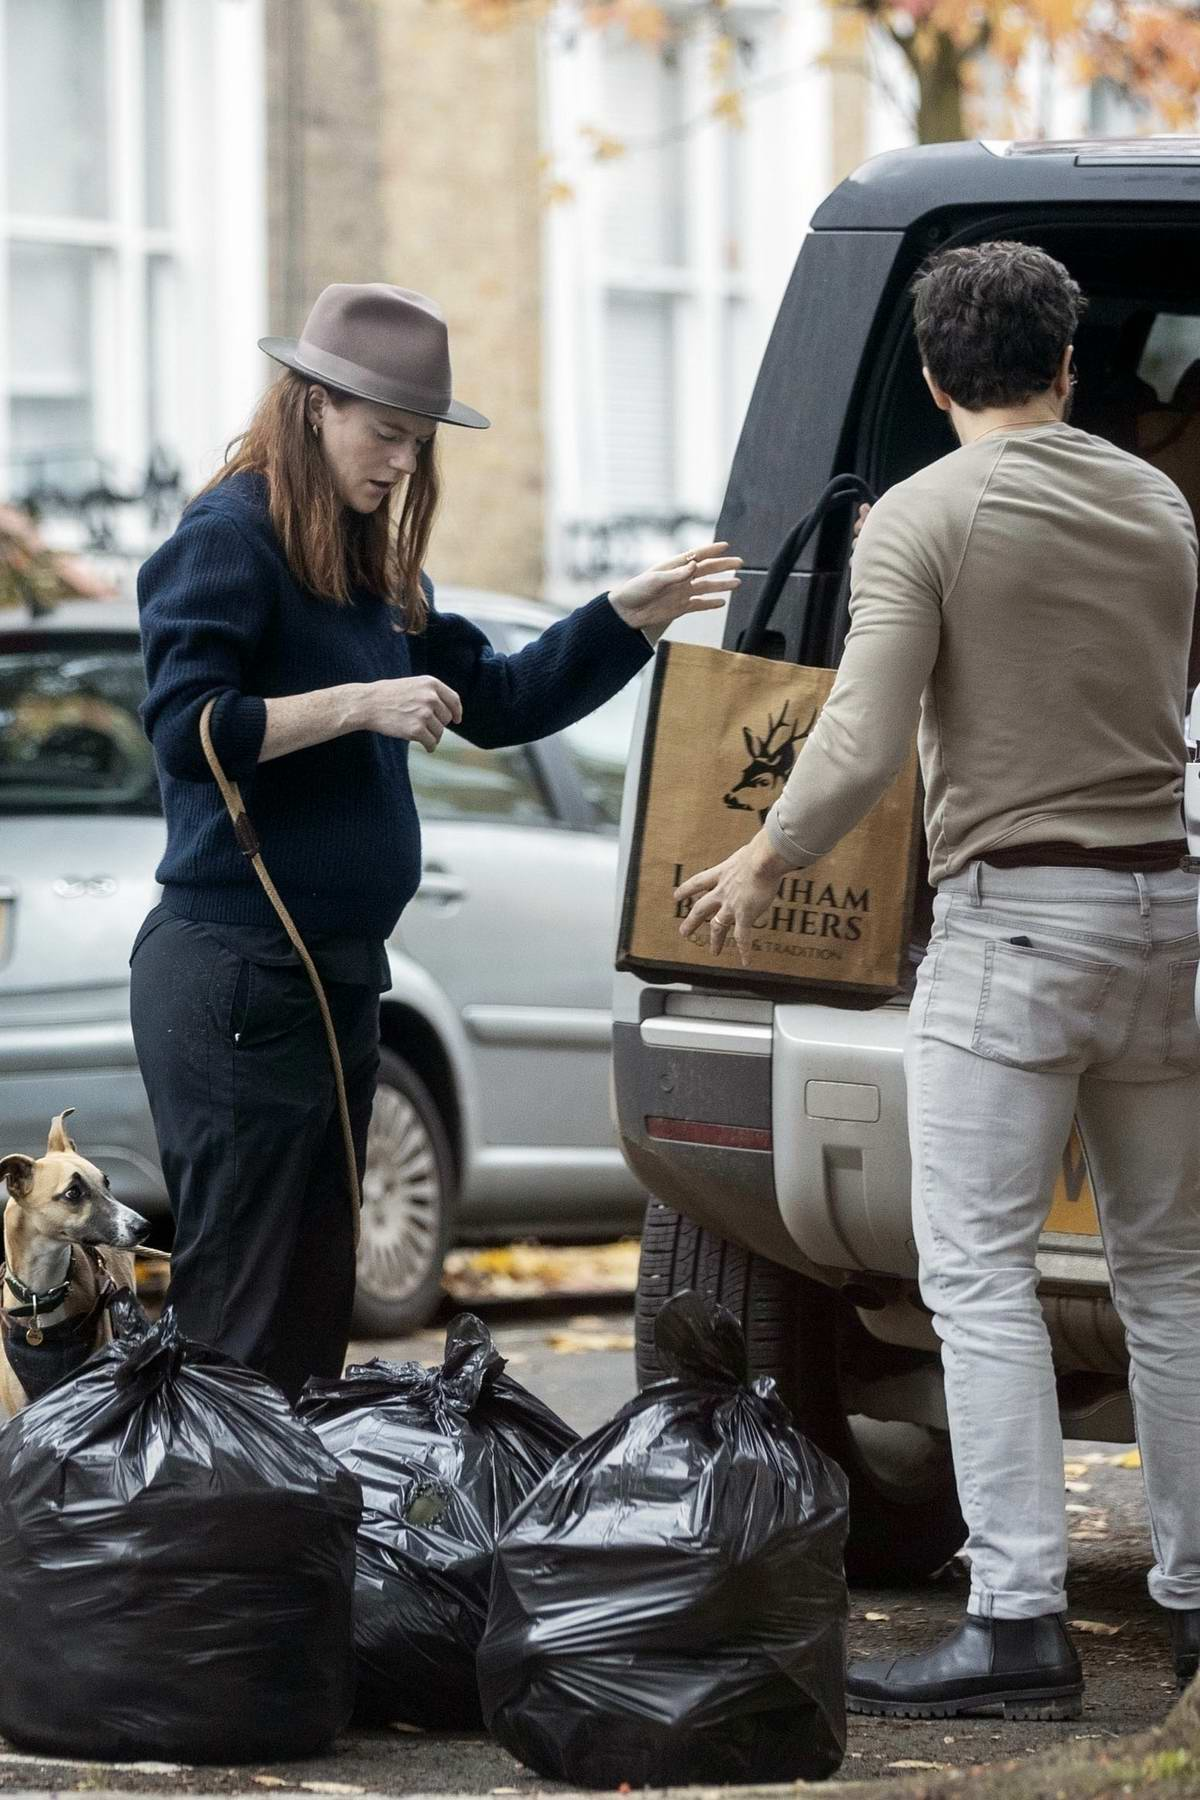 Rose Leslie shows her baby bump while Kit Harrington loads some luggage into the car in London, UK